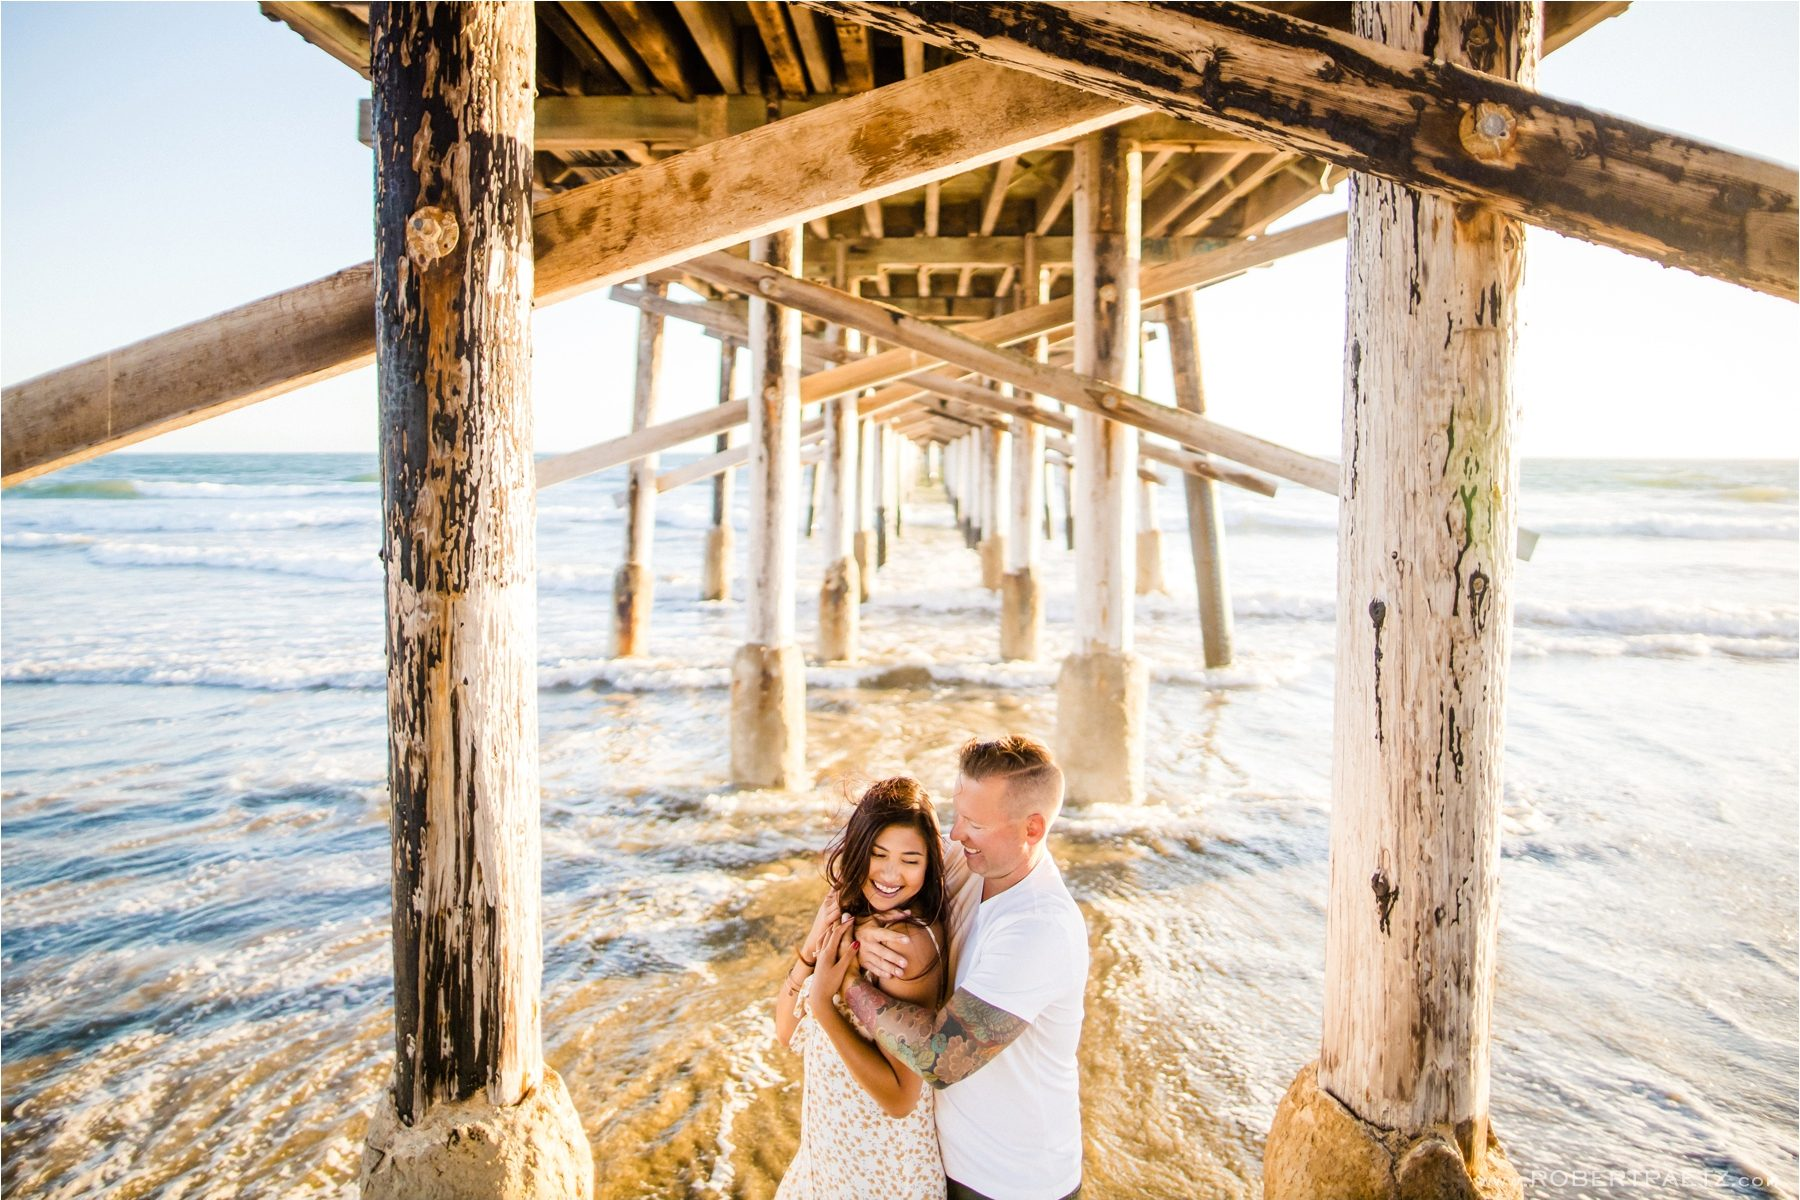 A Newport Beach, Orange County engagement photography session under the pier by the destination wedding photographer Robert Paetz.